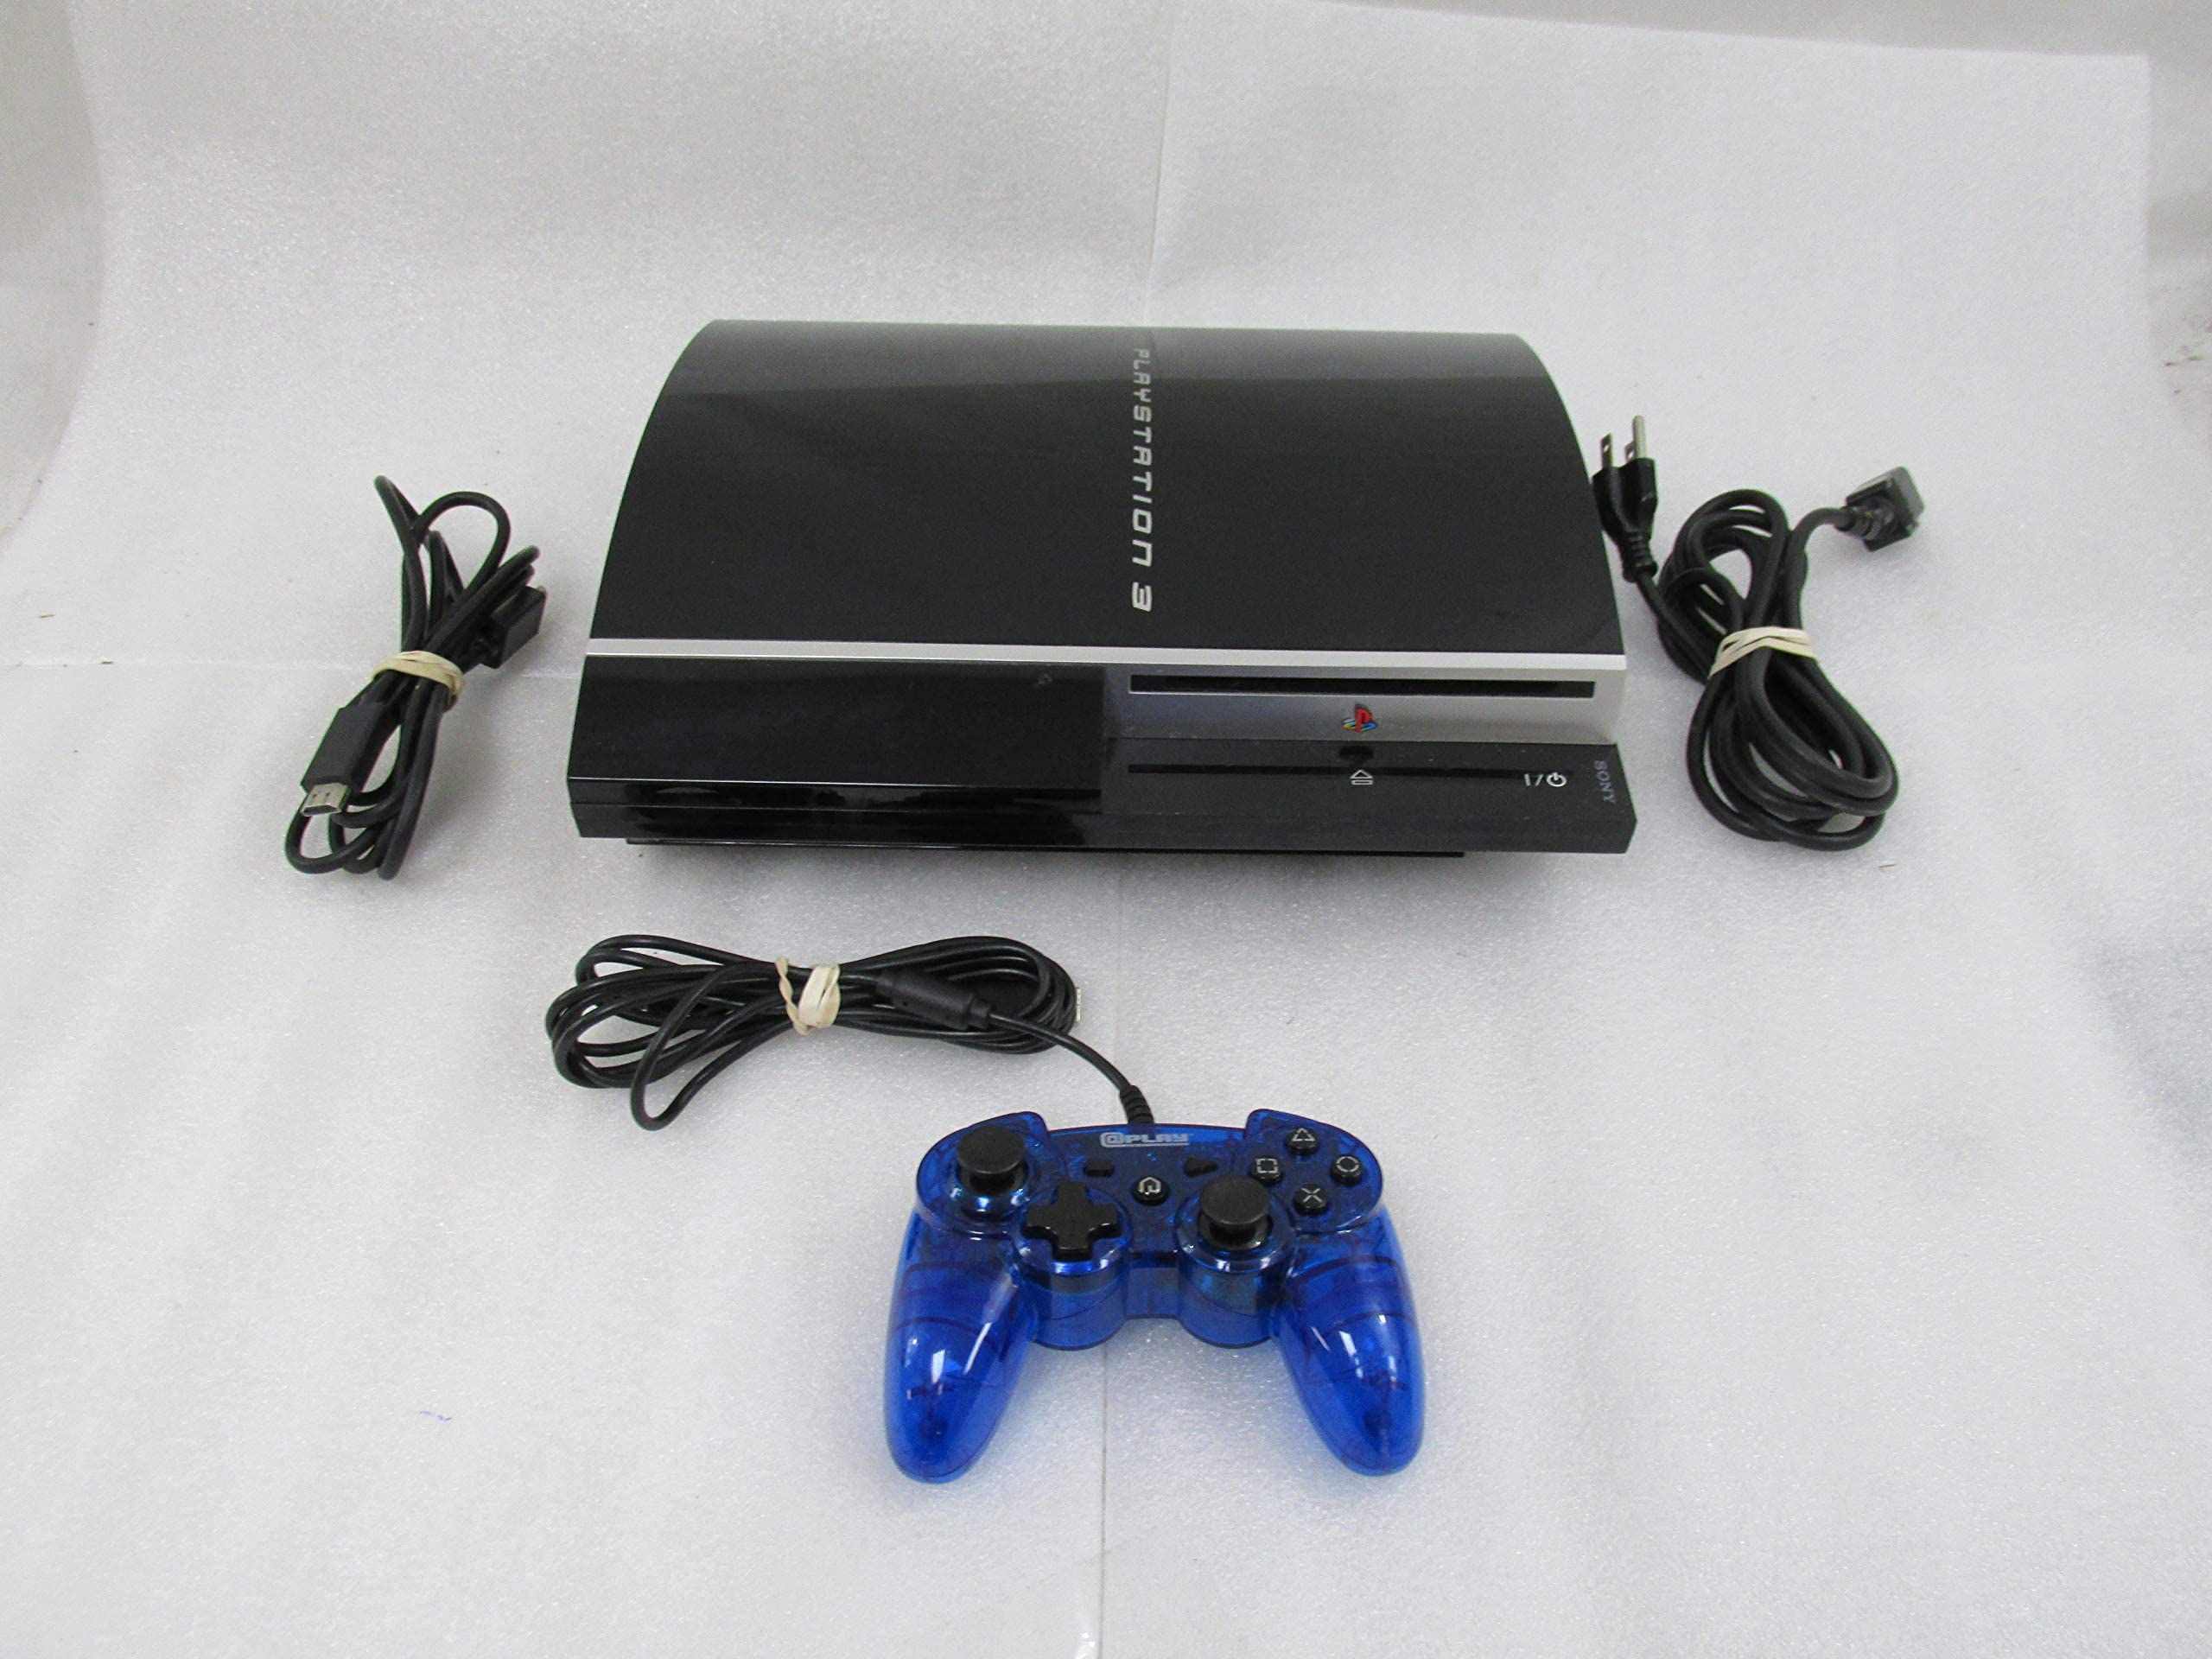 Amazon com: Sony Playstation 3 160GB Video Game Console (Fat